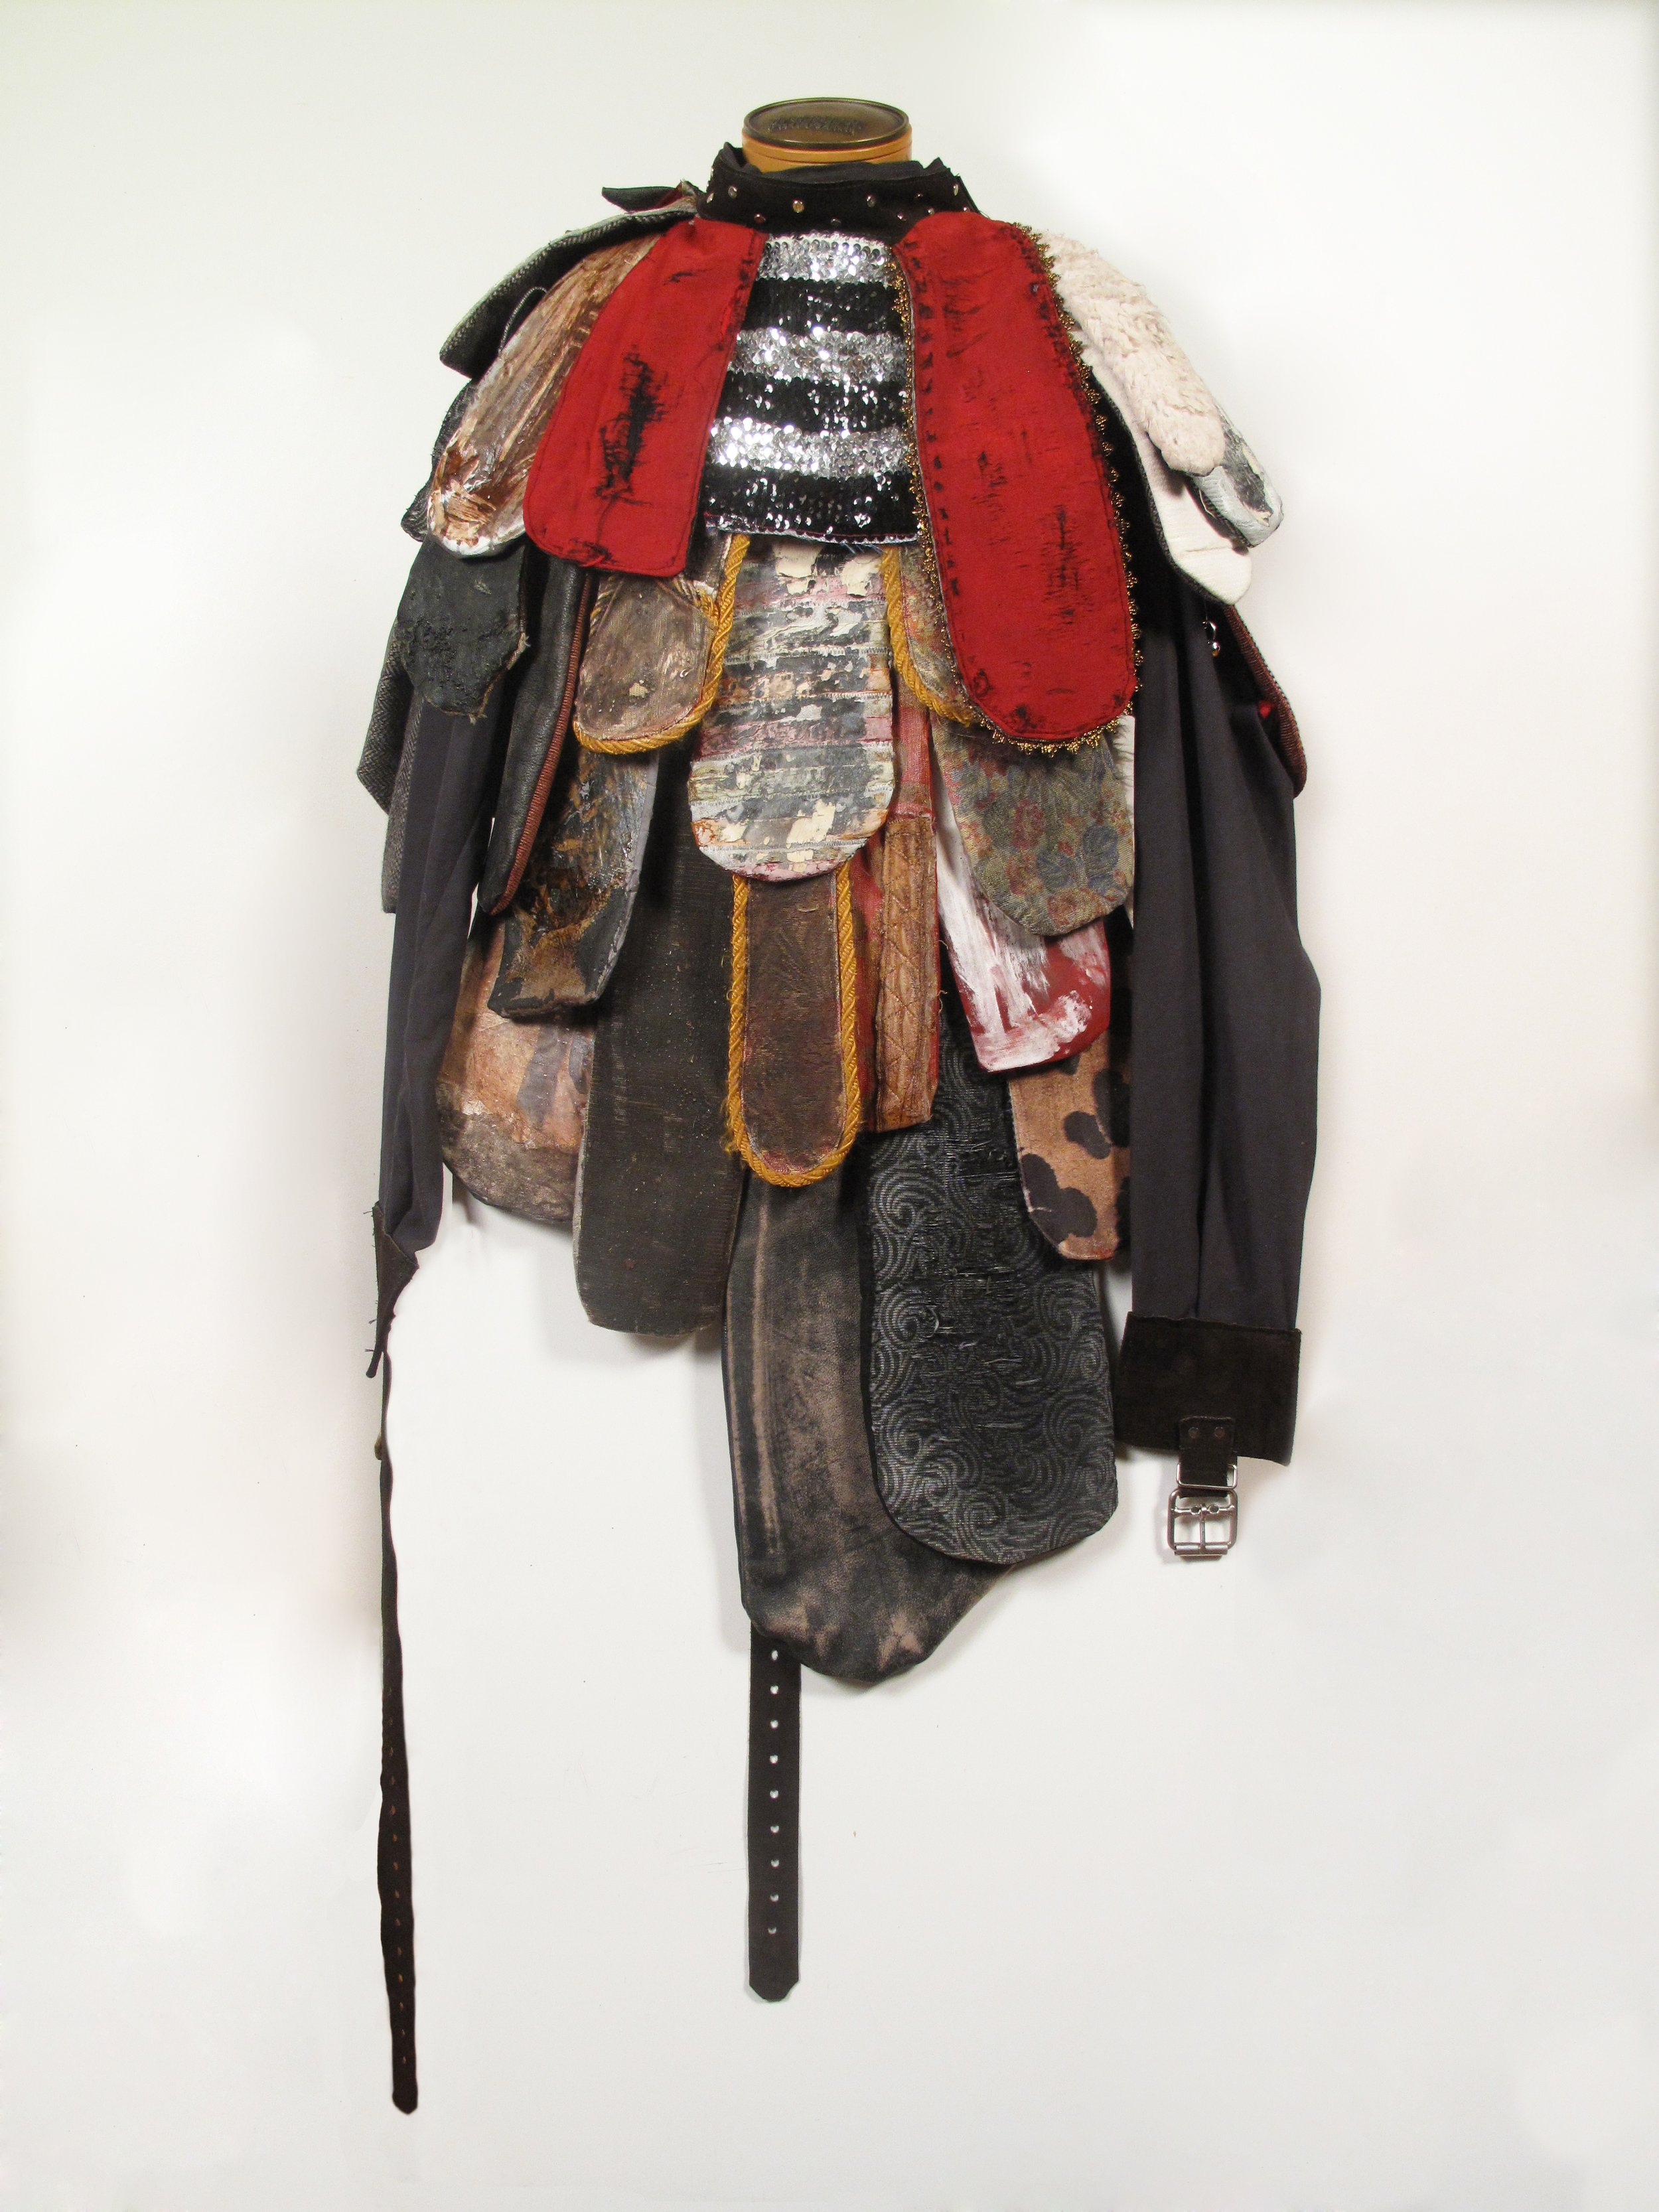 """Jefferson Pinder  Magical Negro (Egungun)   2013 straitjacket, acrylic, fabric, collage transfer, copper leaf, sequins, fencing mask, central armature 48"""" x 22"""" x 12"""""""